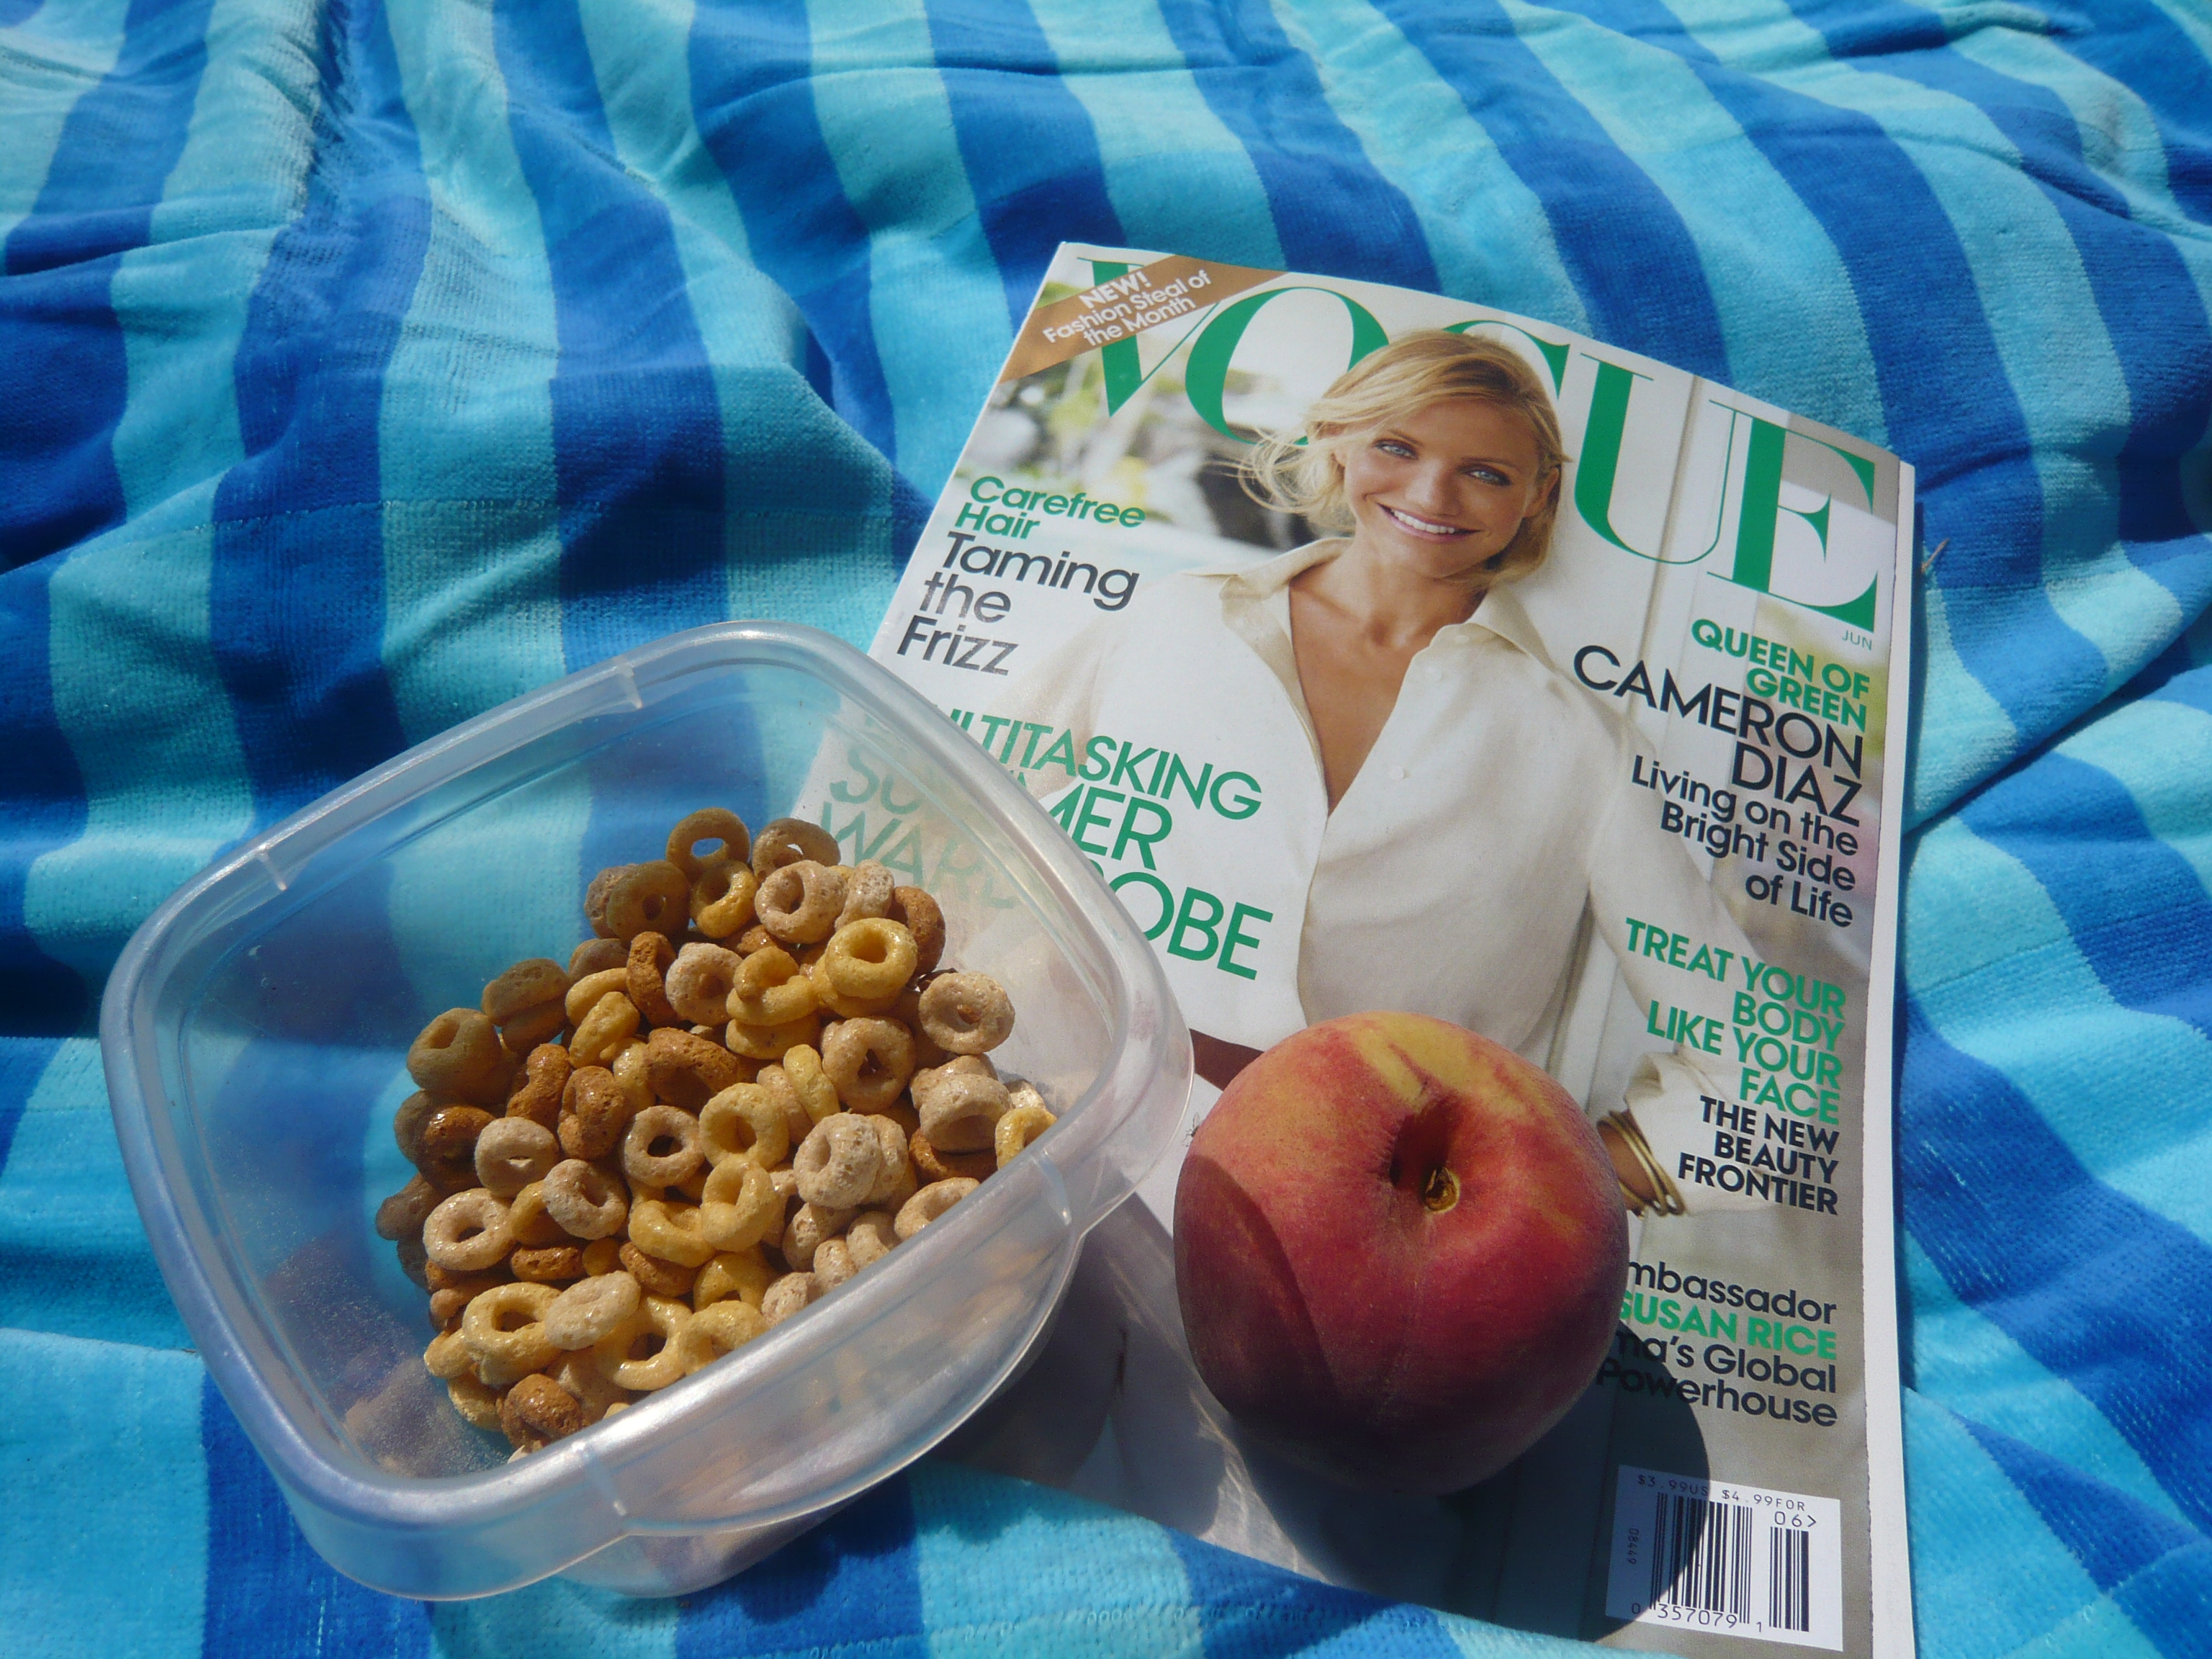 The Vogue that arrived today, Multi-Grain Cheerios, and a warm and juicy peach.